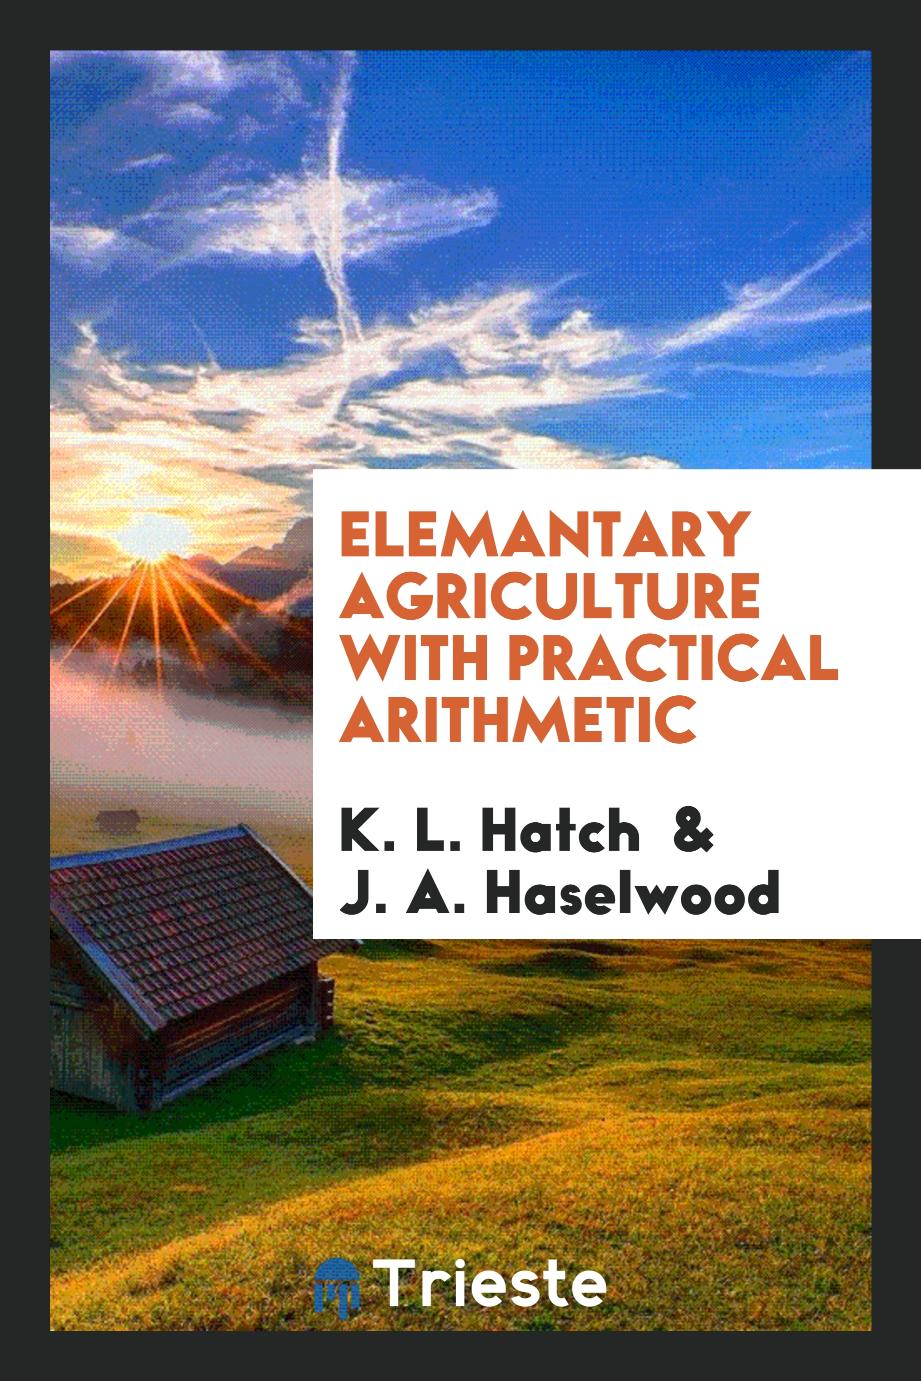 Elemantary agriculture with practical arithmetic